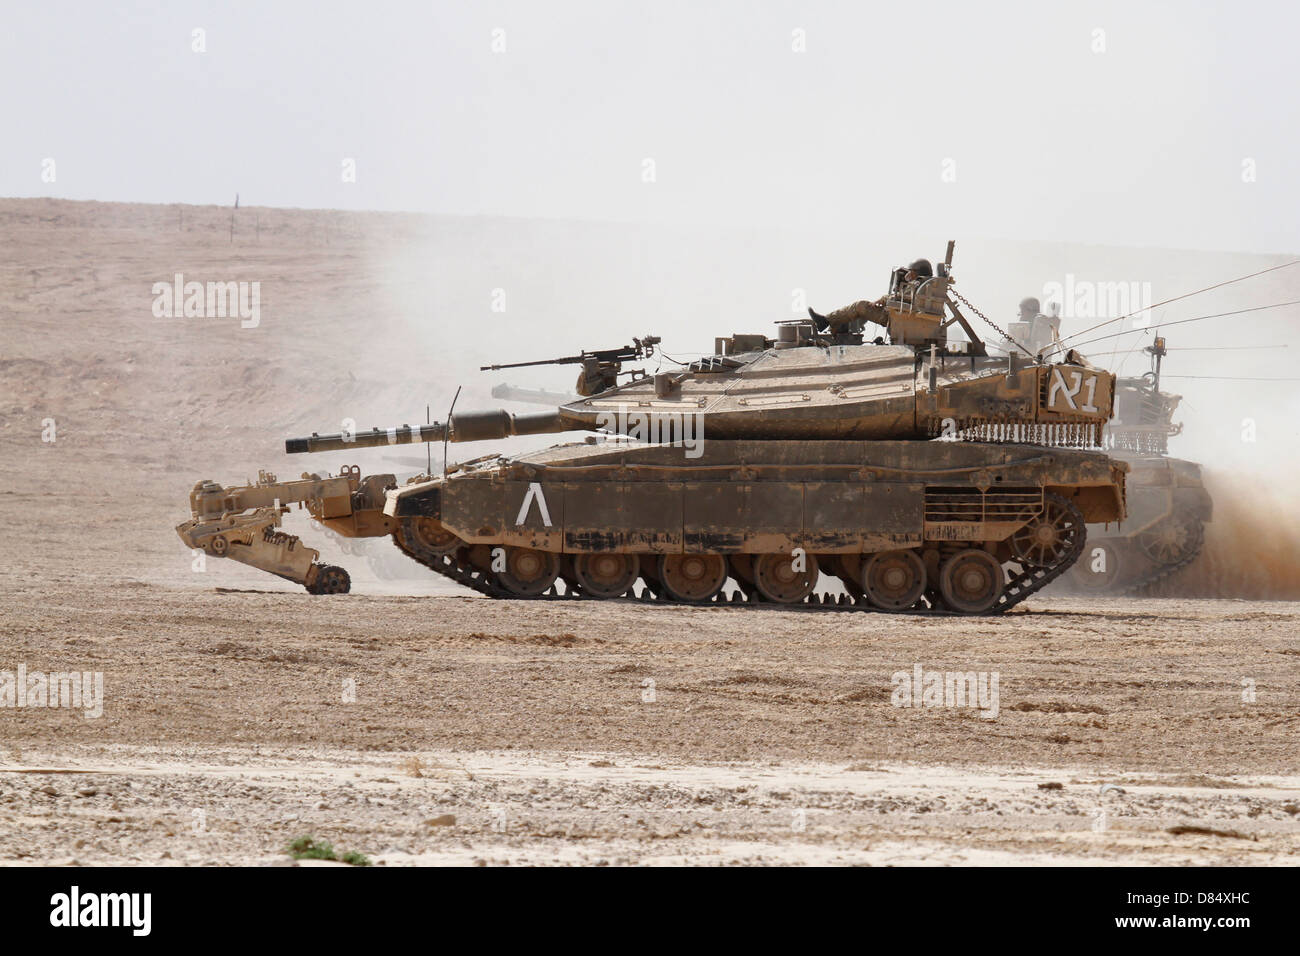 An Israel Defense Force Merkava Mark IV main battle tank with mine clearing device attached to its front. - Stock Image